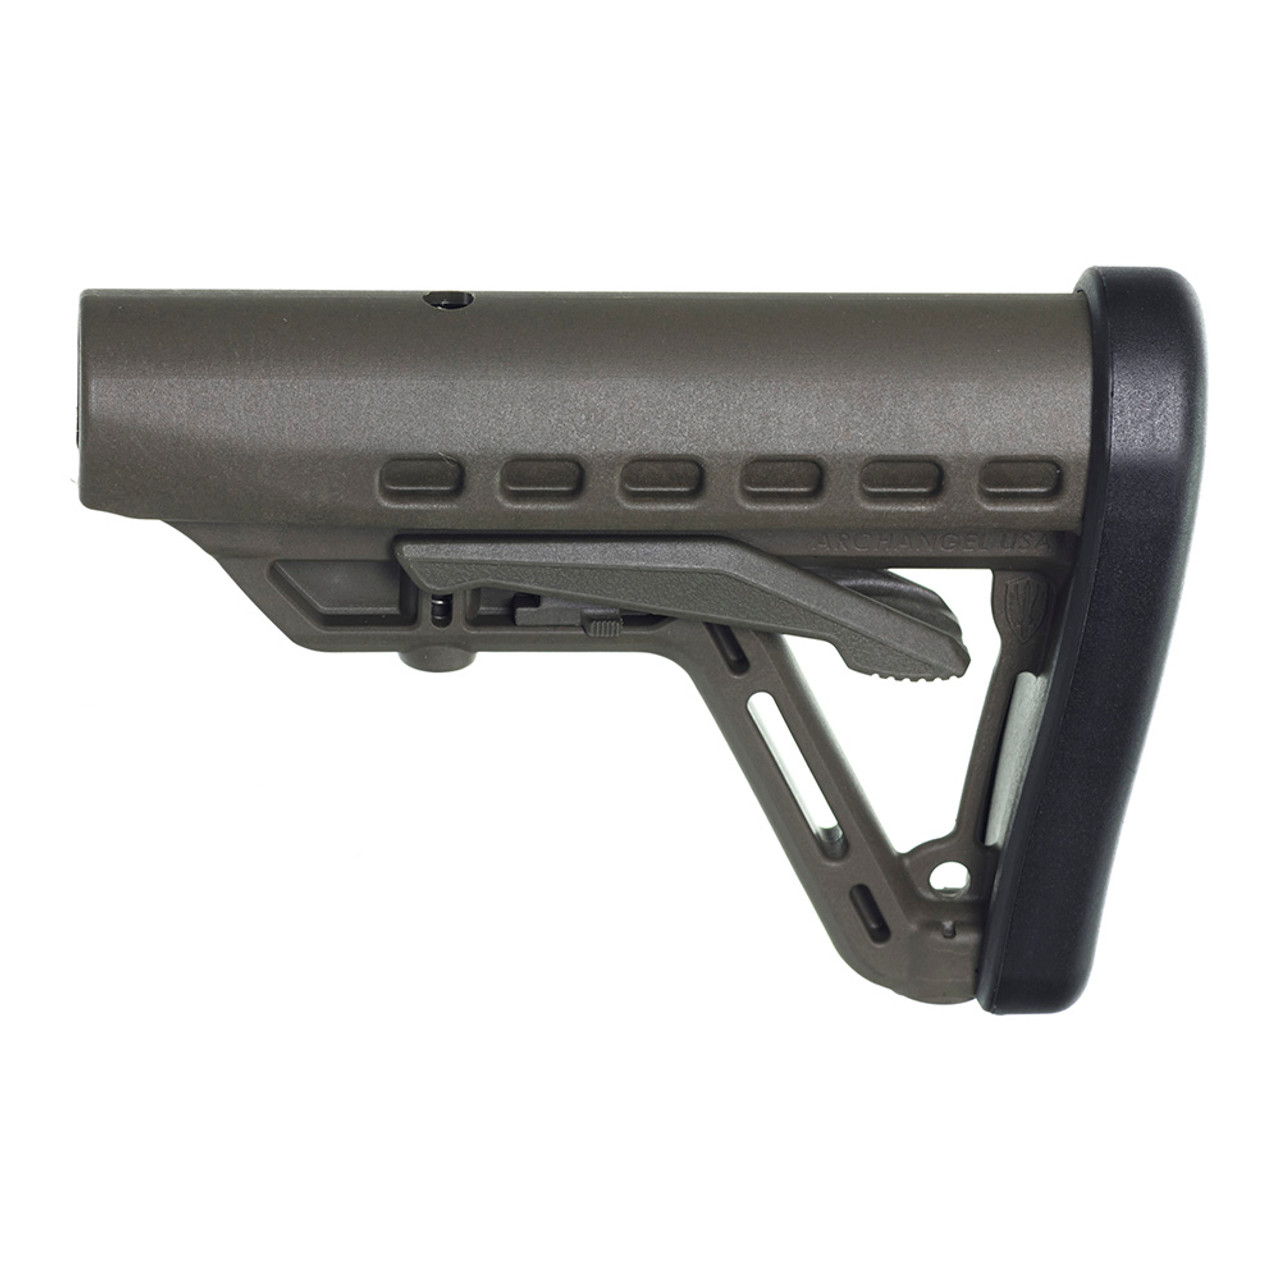 Archangel® Low-Profile AR-15® Buttstock Fits Commercial Tube - Olive Drab Polymer